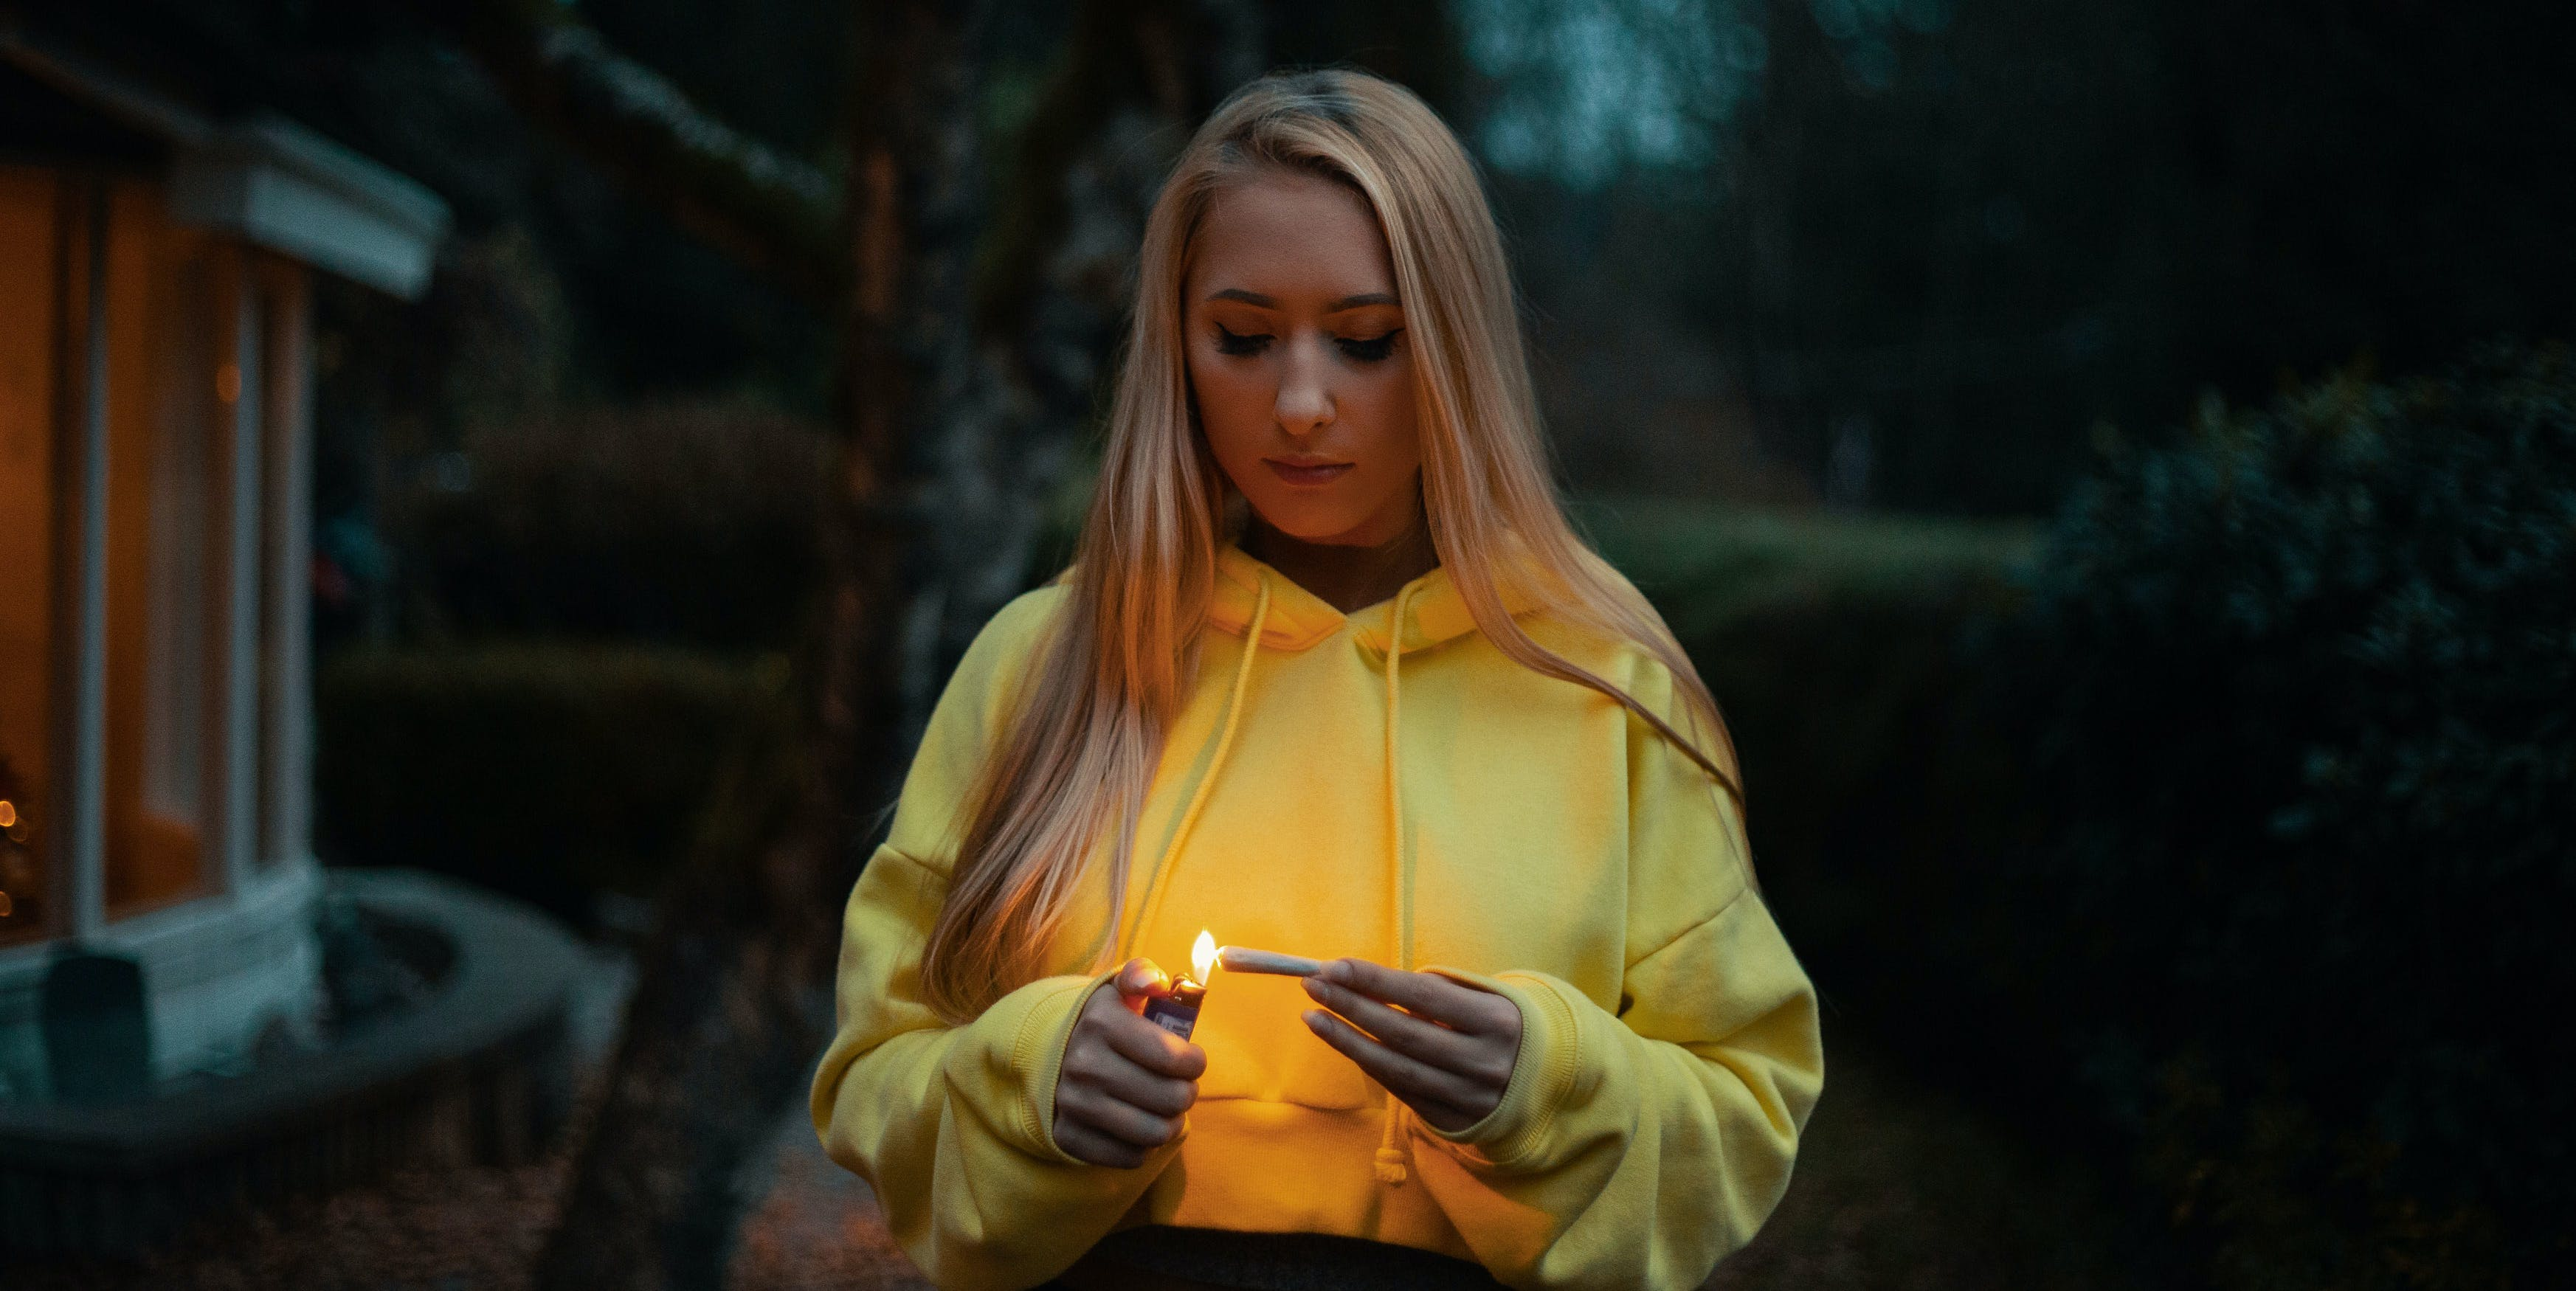 A woman in a yellow hooded sweatshirt smoking weed before bed